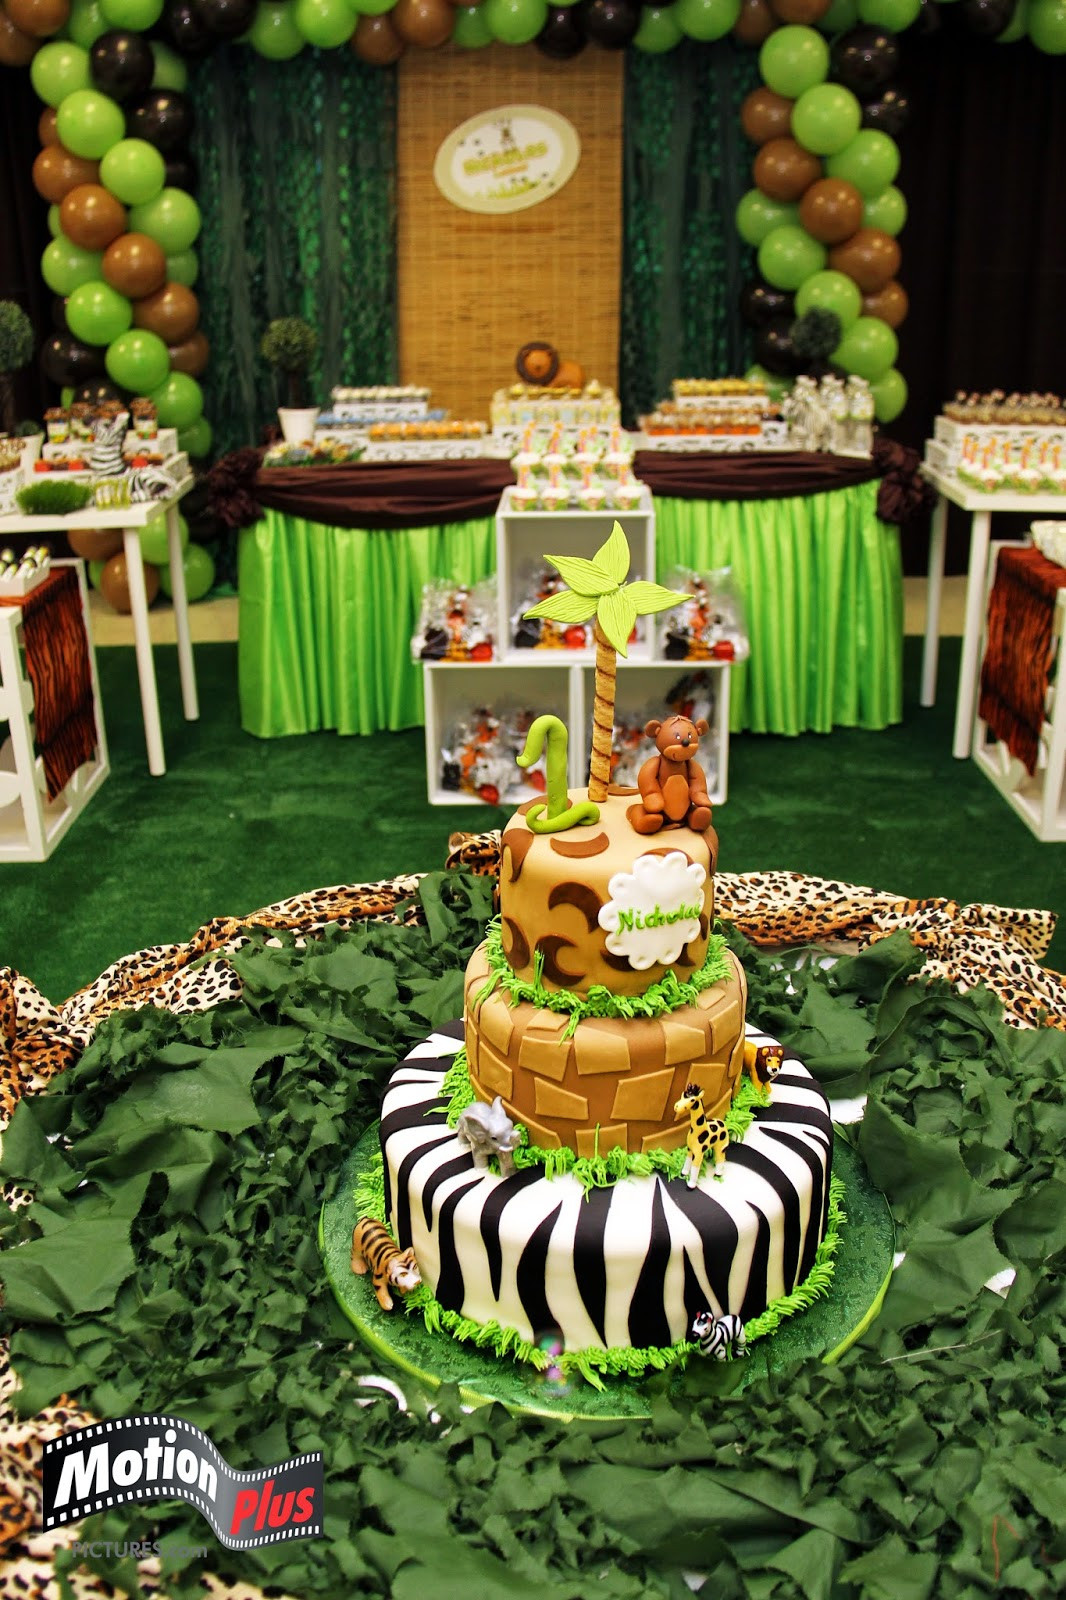 Safari Birthday Party Decorations  Motion Plus Safari Themed Birthday Party Ideas